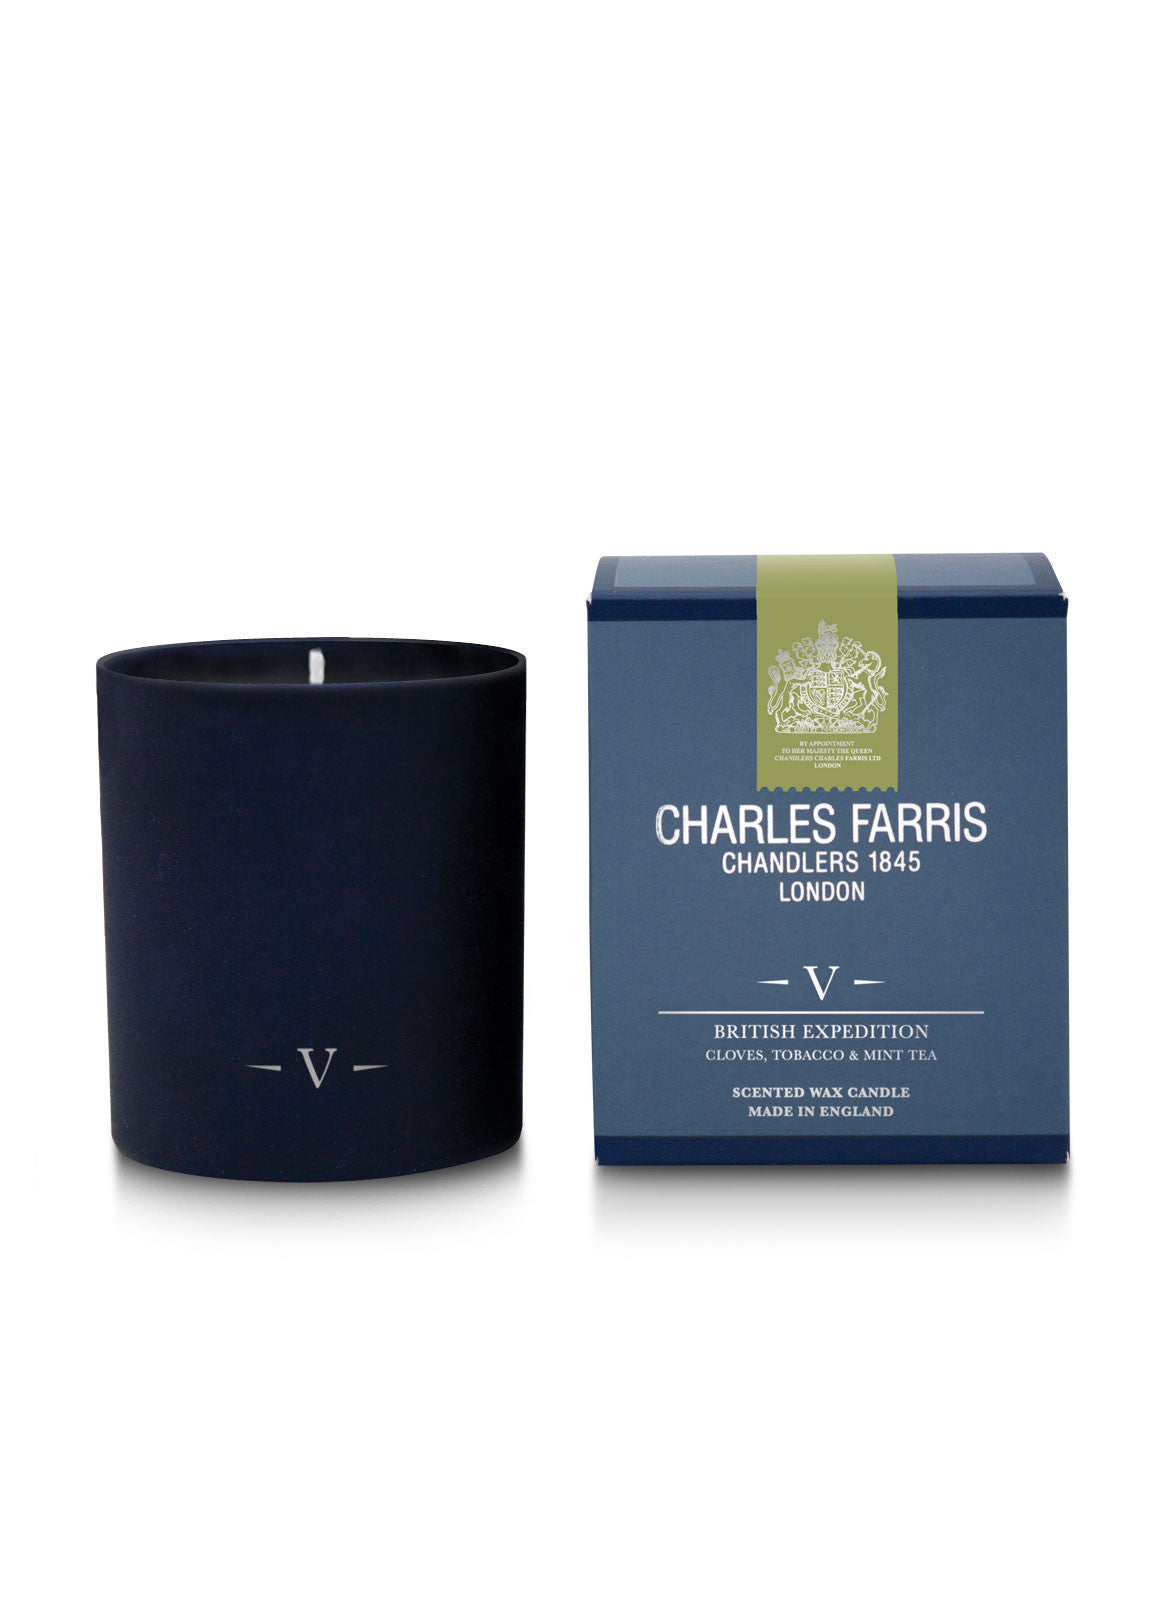 A luxury scented candle in a dark blue jar.